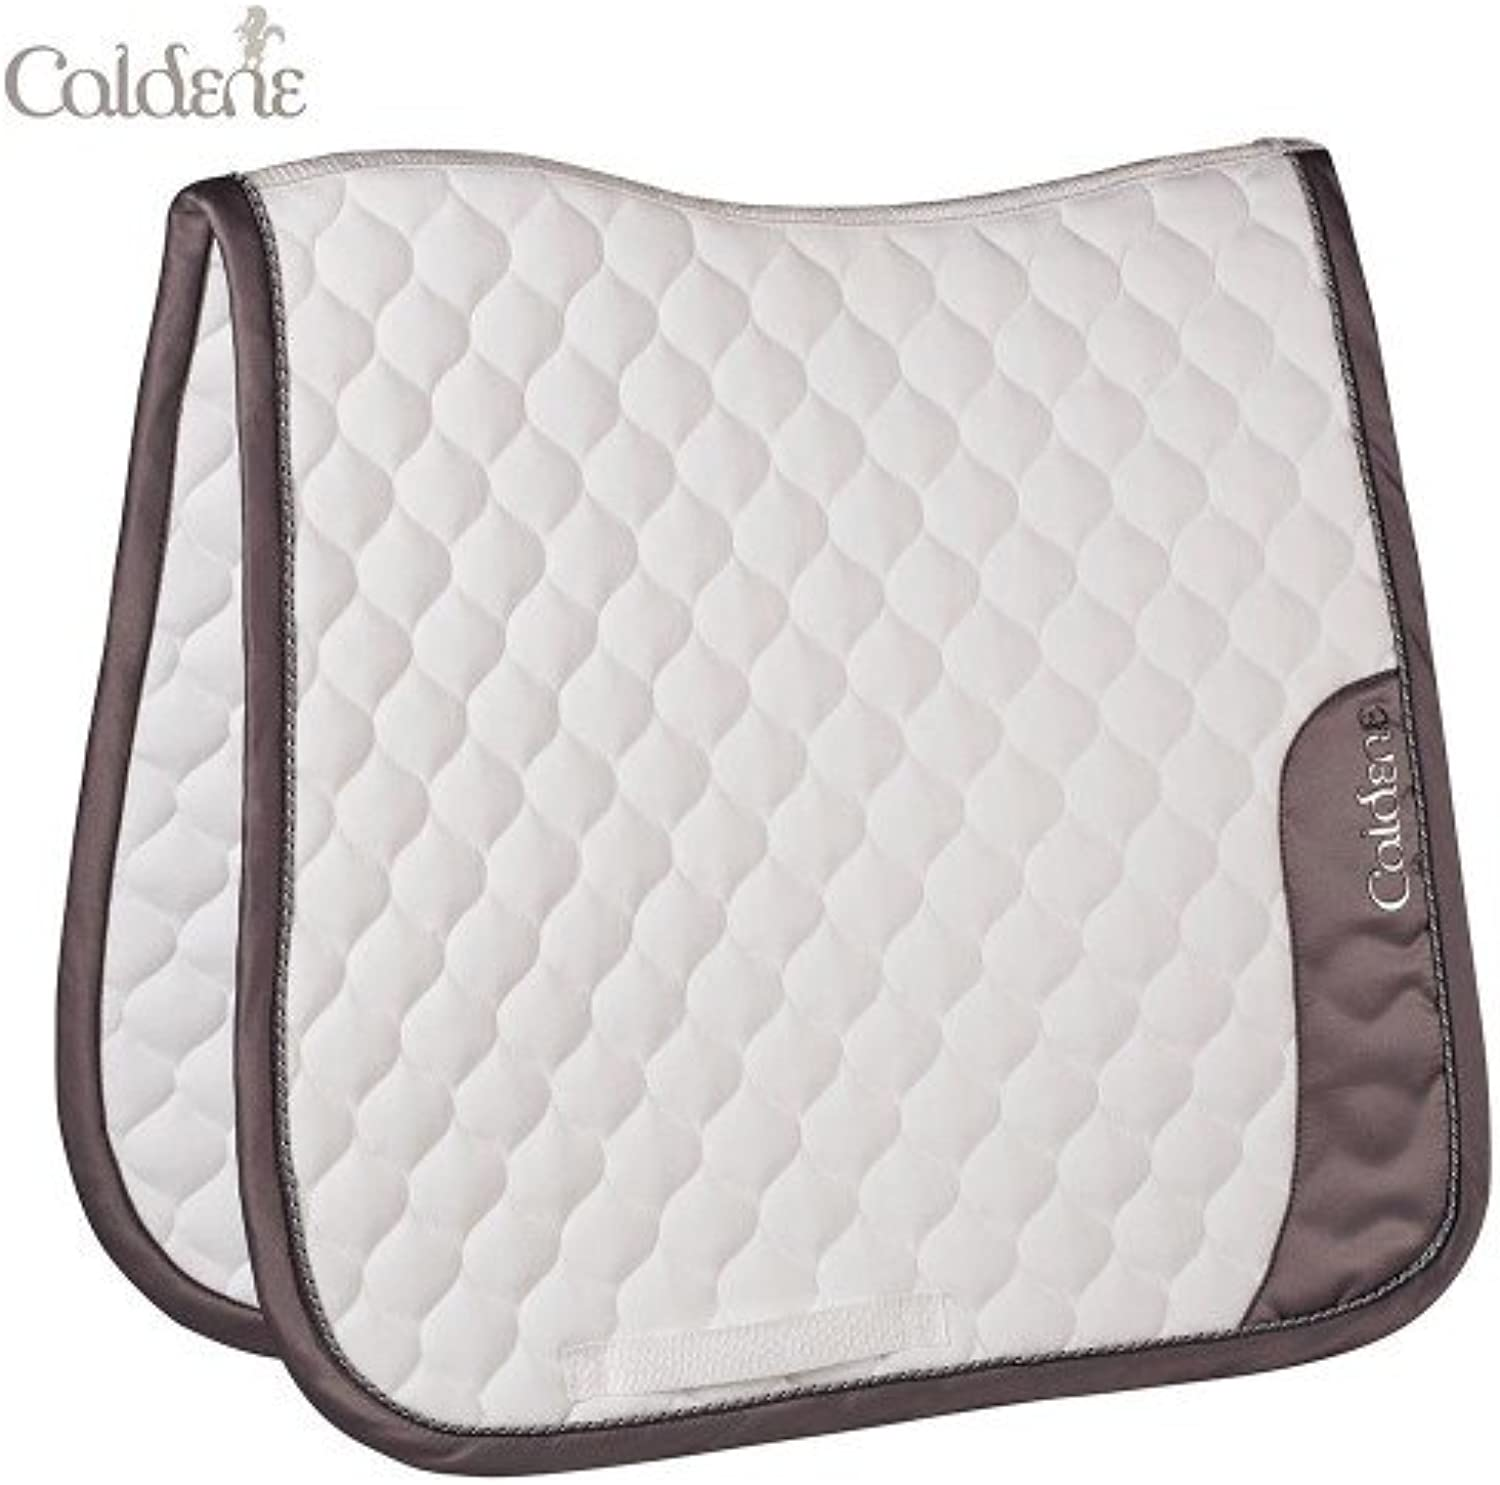 Caldene Horse Saddlepad Metallic Dressage White Cob